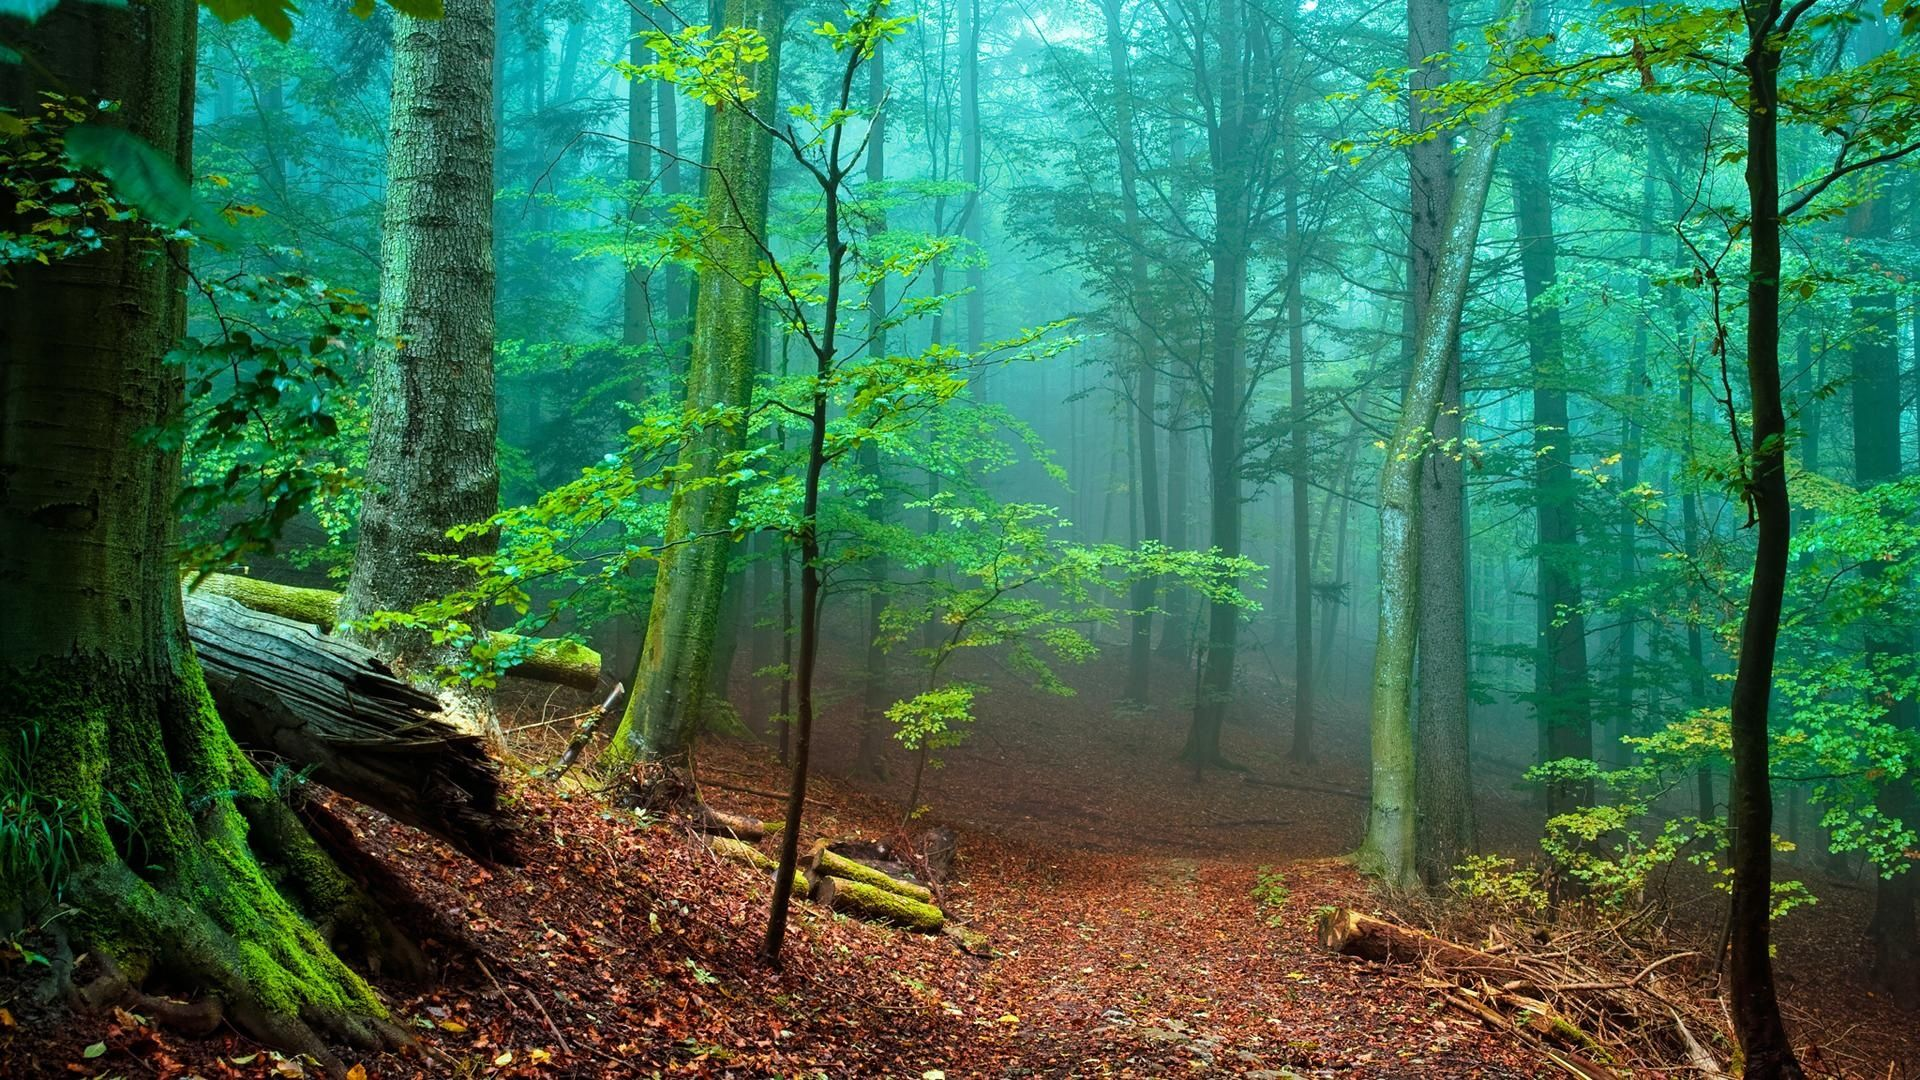 nature trees forest woods magic wallpaper 1920×1080 1080p widescreennature trees forest woods magic wallpaper 1920×1080 1080p widescreen